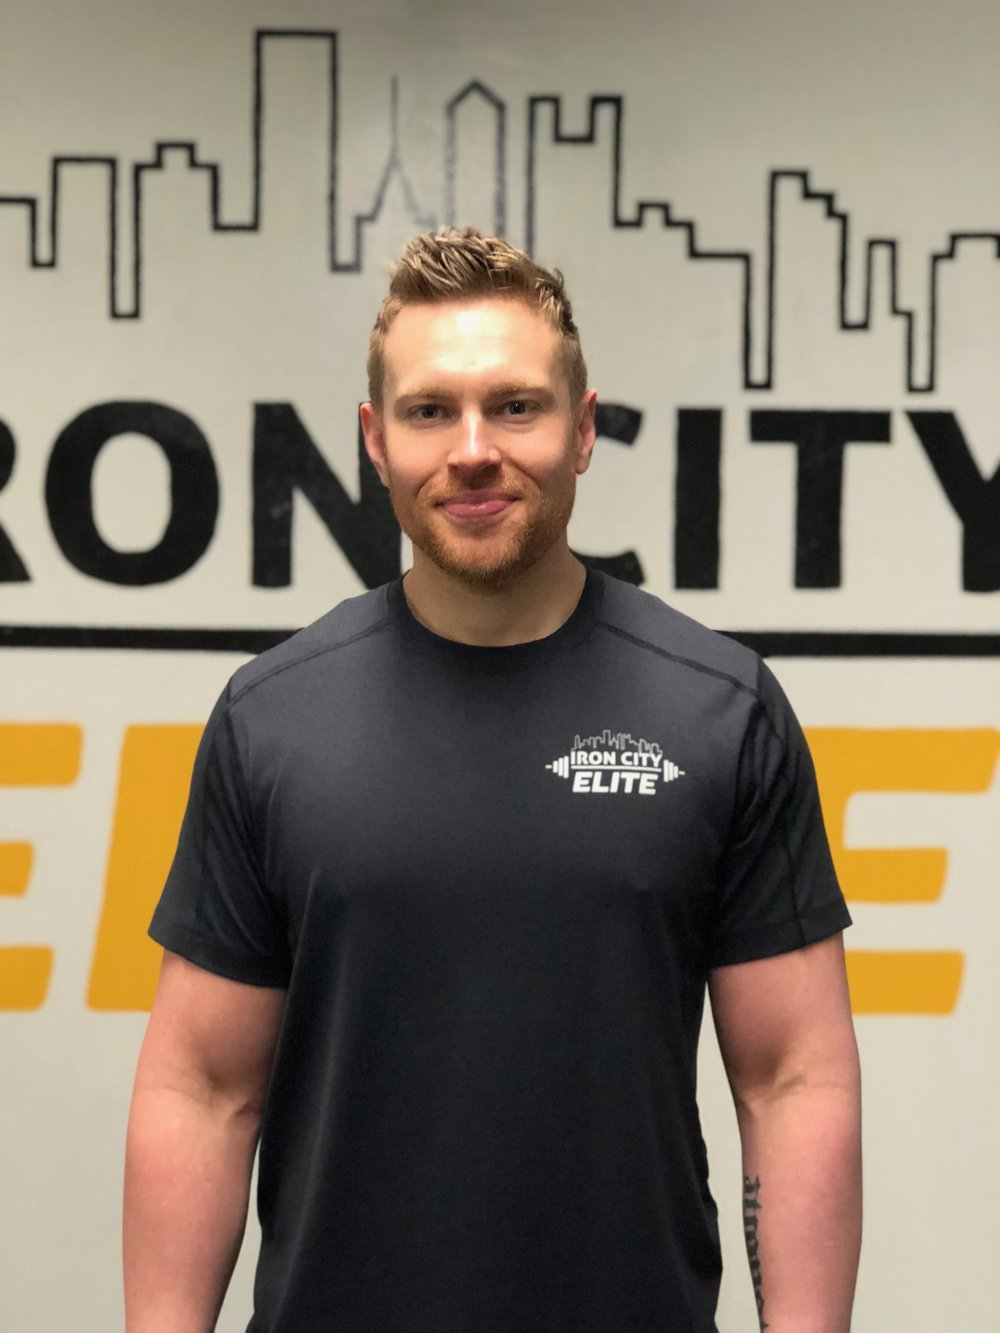 Jeremy Smith, MS, CSCS    Owner / Director of Sports Performance   Founder and Owner of Iron City Elite, Jeremy C. Smith specializes in sports performance, corrective exercise and movement improvement, kettlebell training and Olympic lifting for power development. He believes in a personalized approach for each of his clients and has a passion for youth sports development.